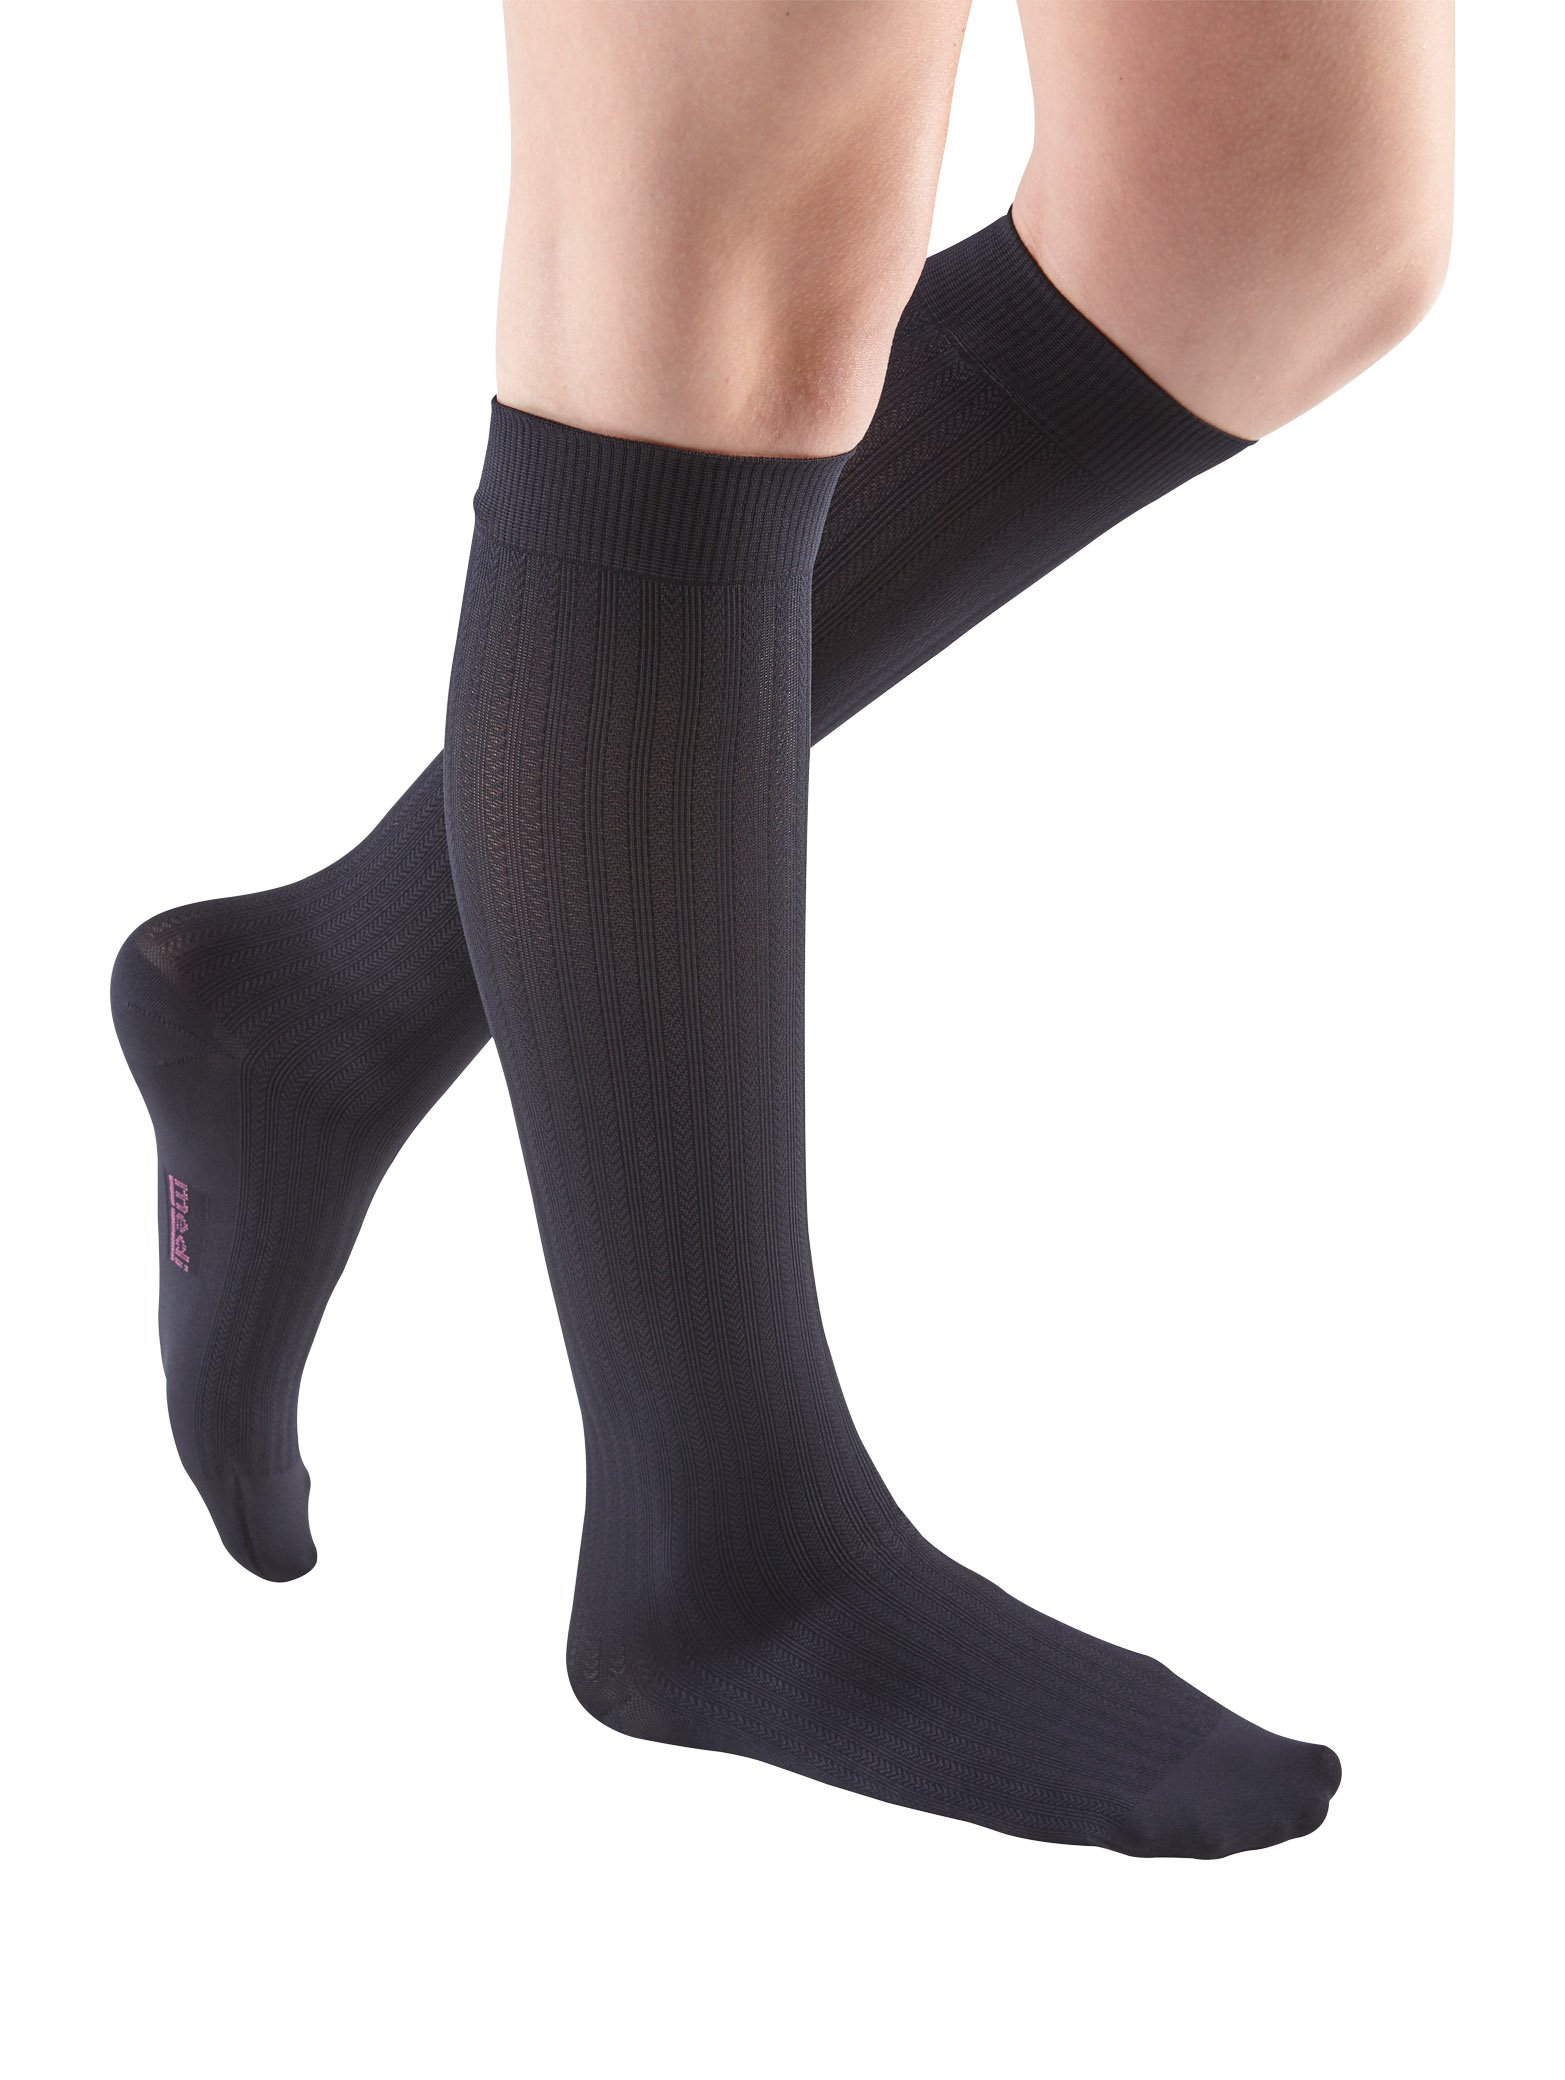 mediven for Women Vitality, 20-30 mmHg, Calf High Stockings, Closed Toe by mediven